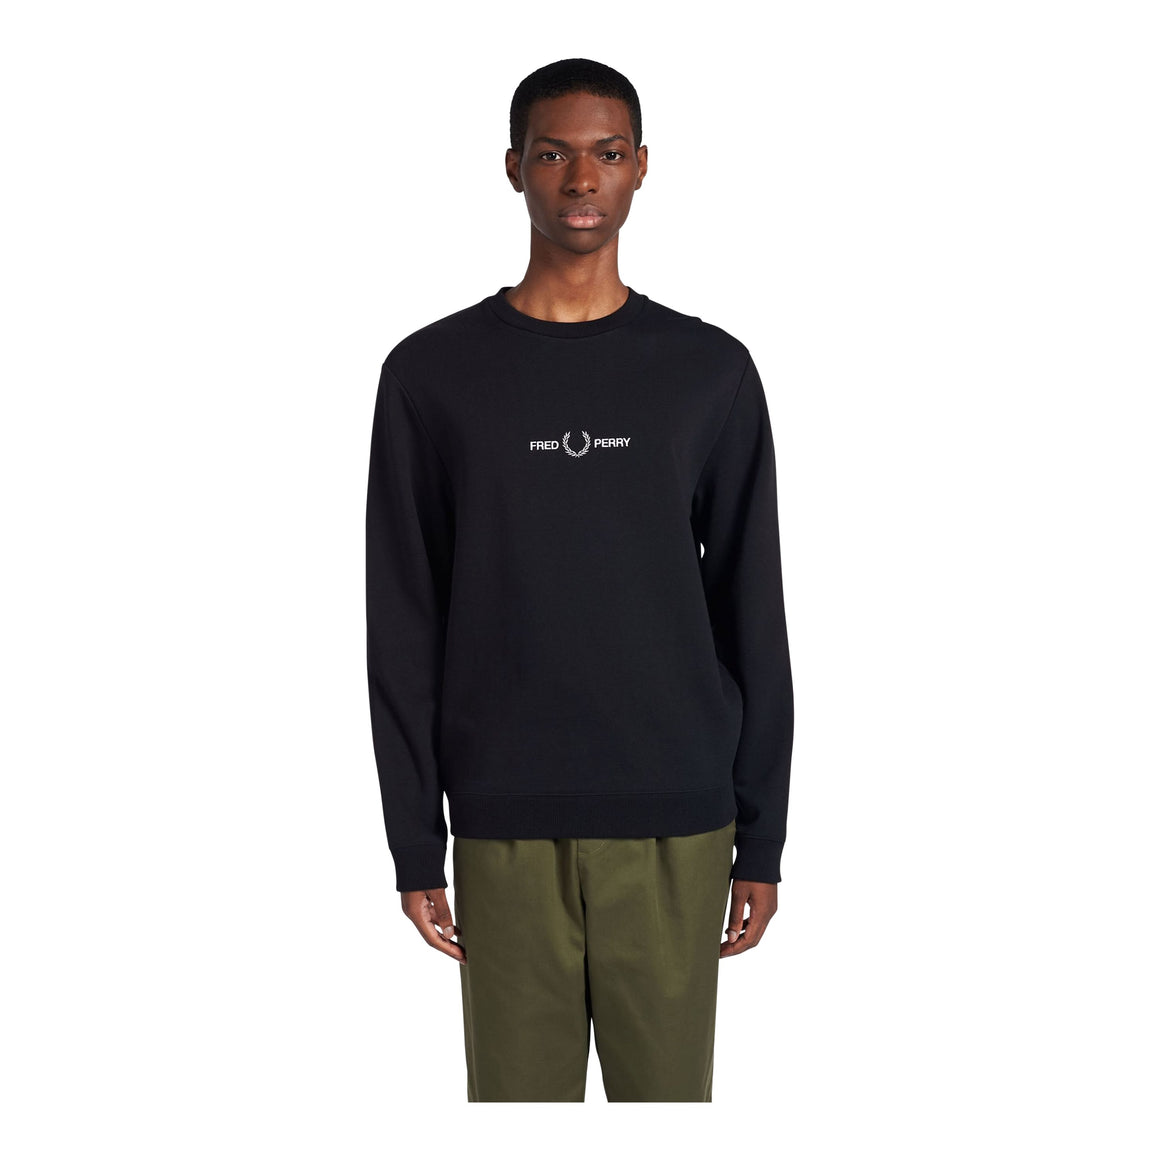 Graphic Sweatshirt for Men in Black